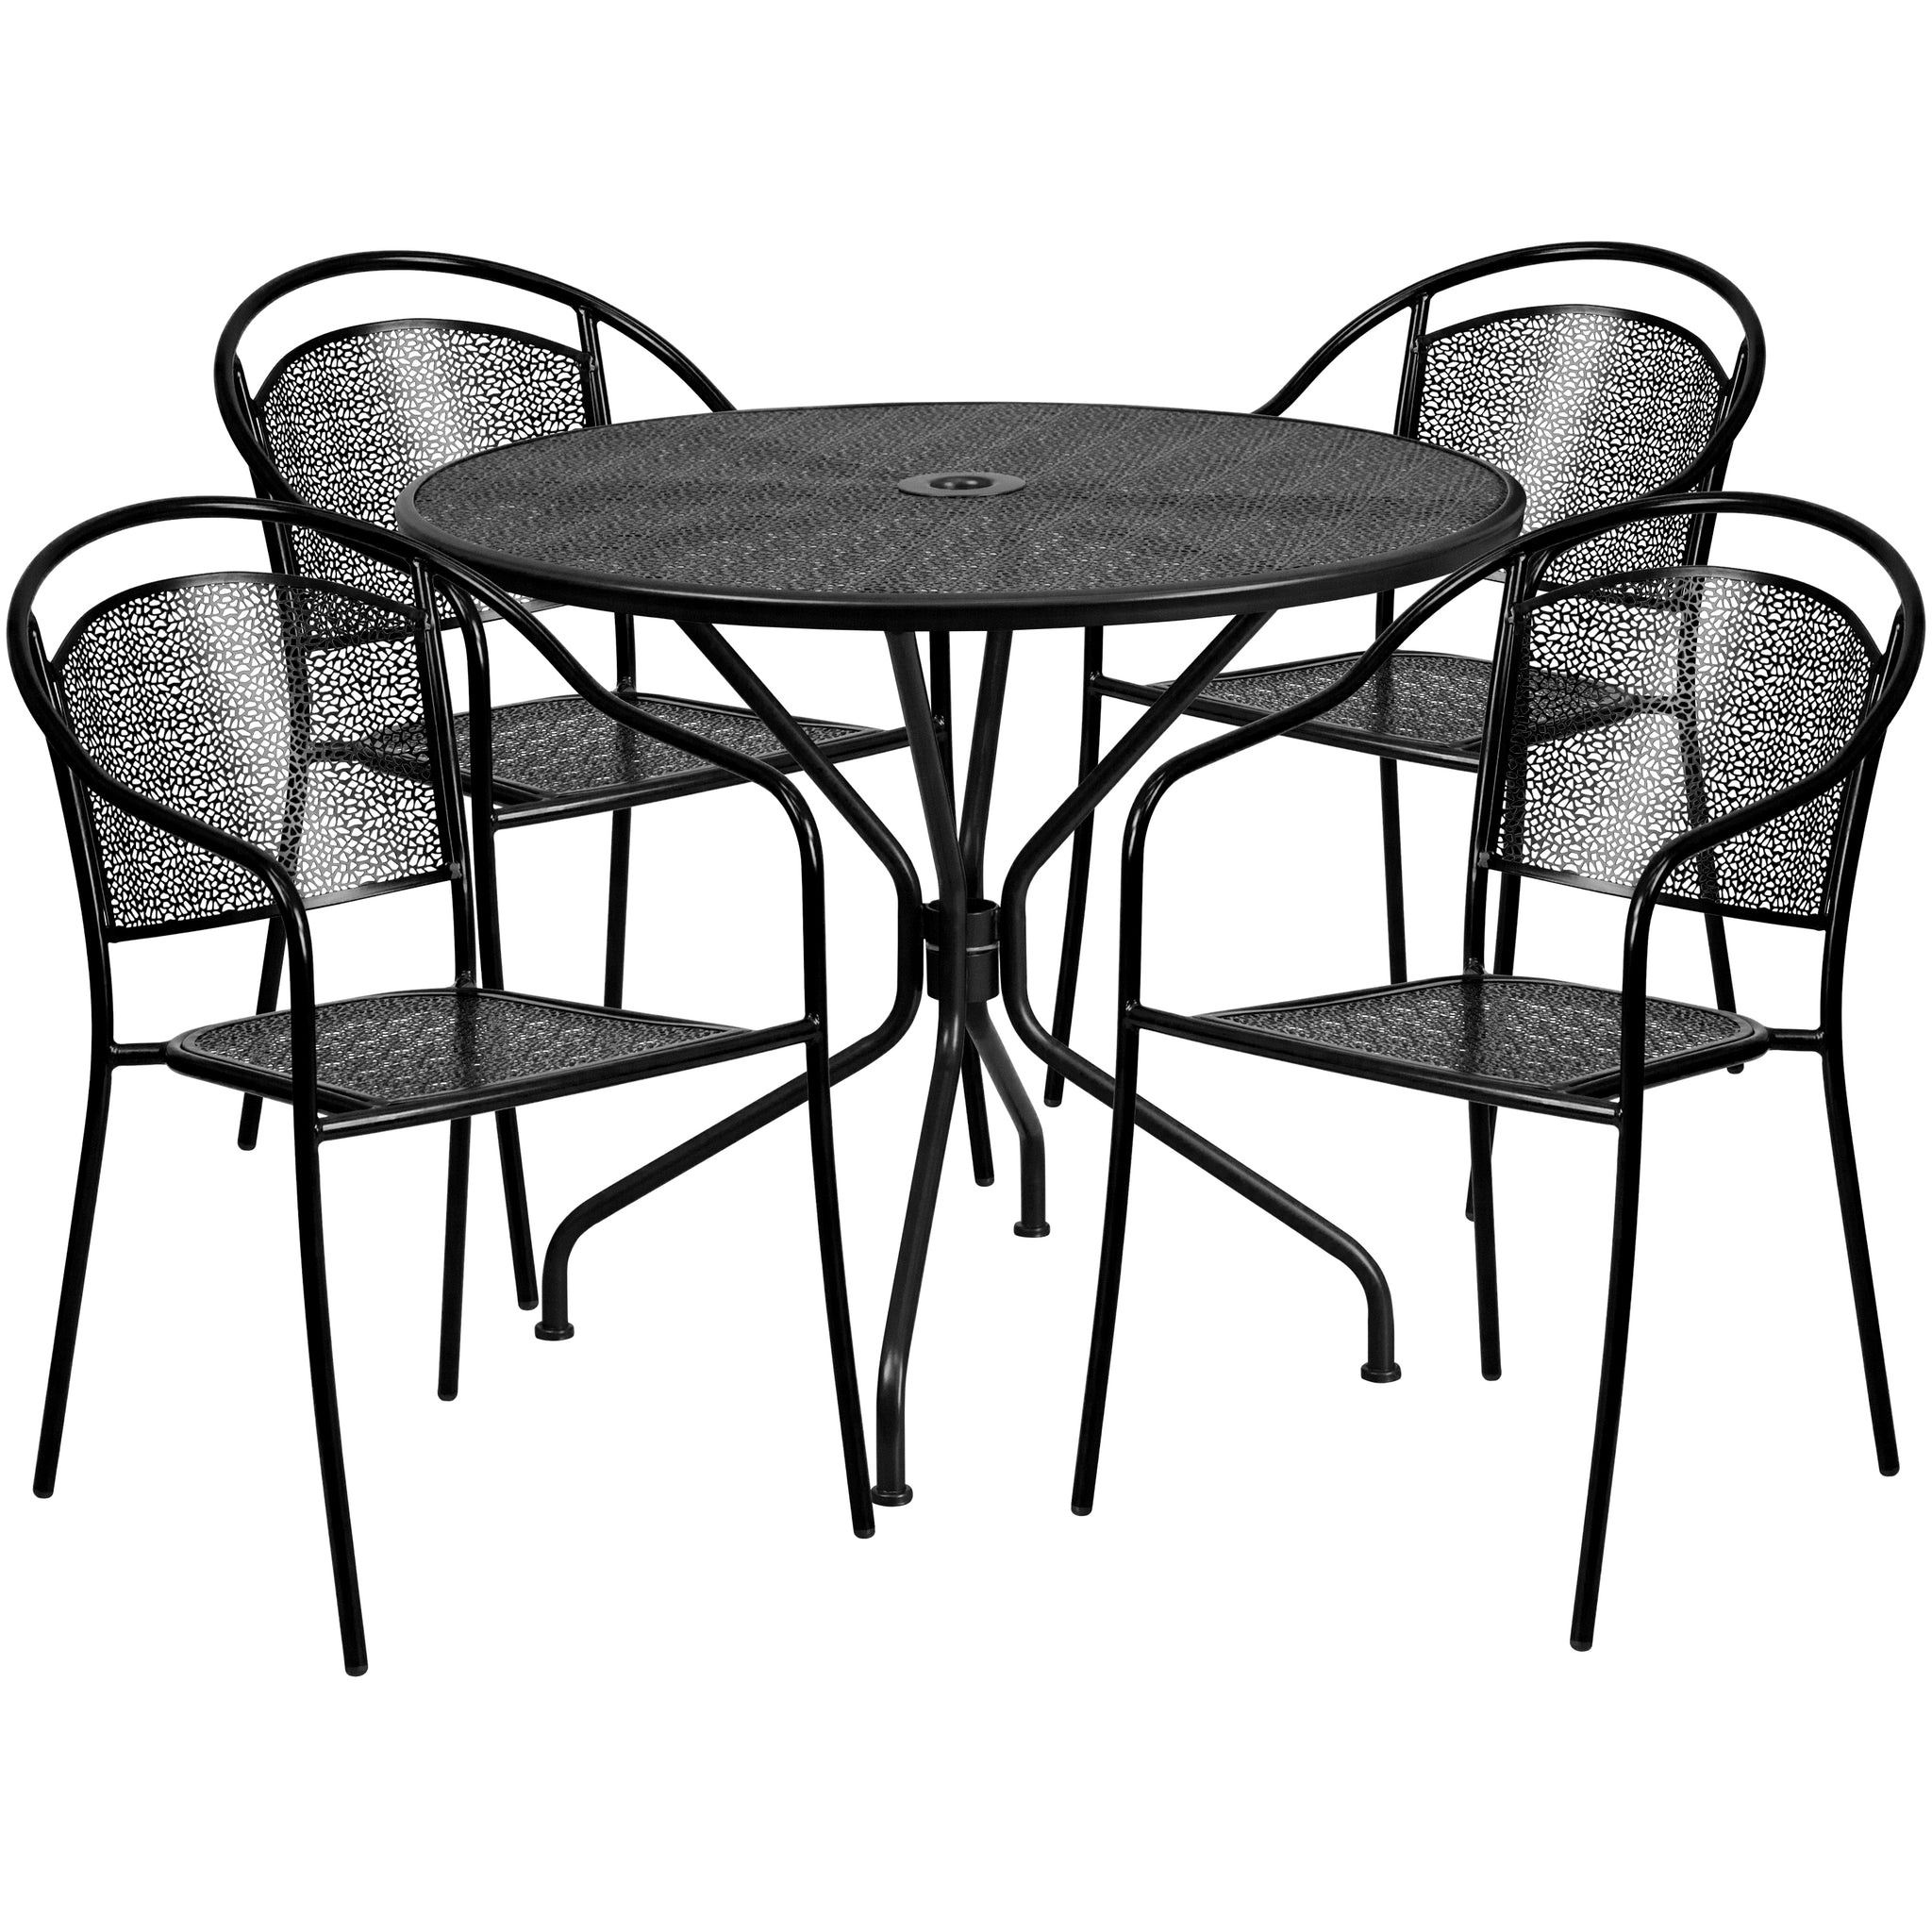 35.25'' Round Indoor-Outdoor Steel Patio Table Set with 4 Round Back Chairs: Gold